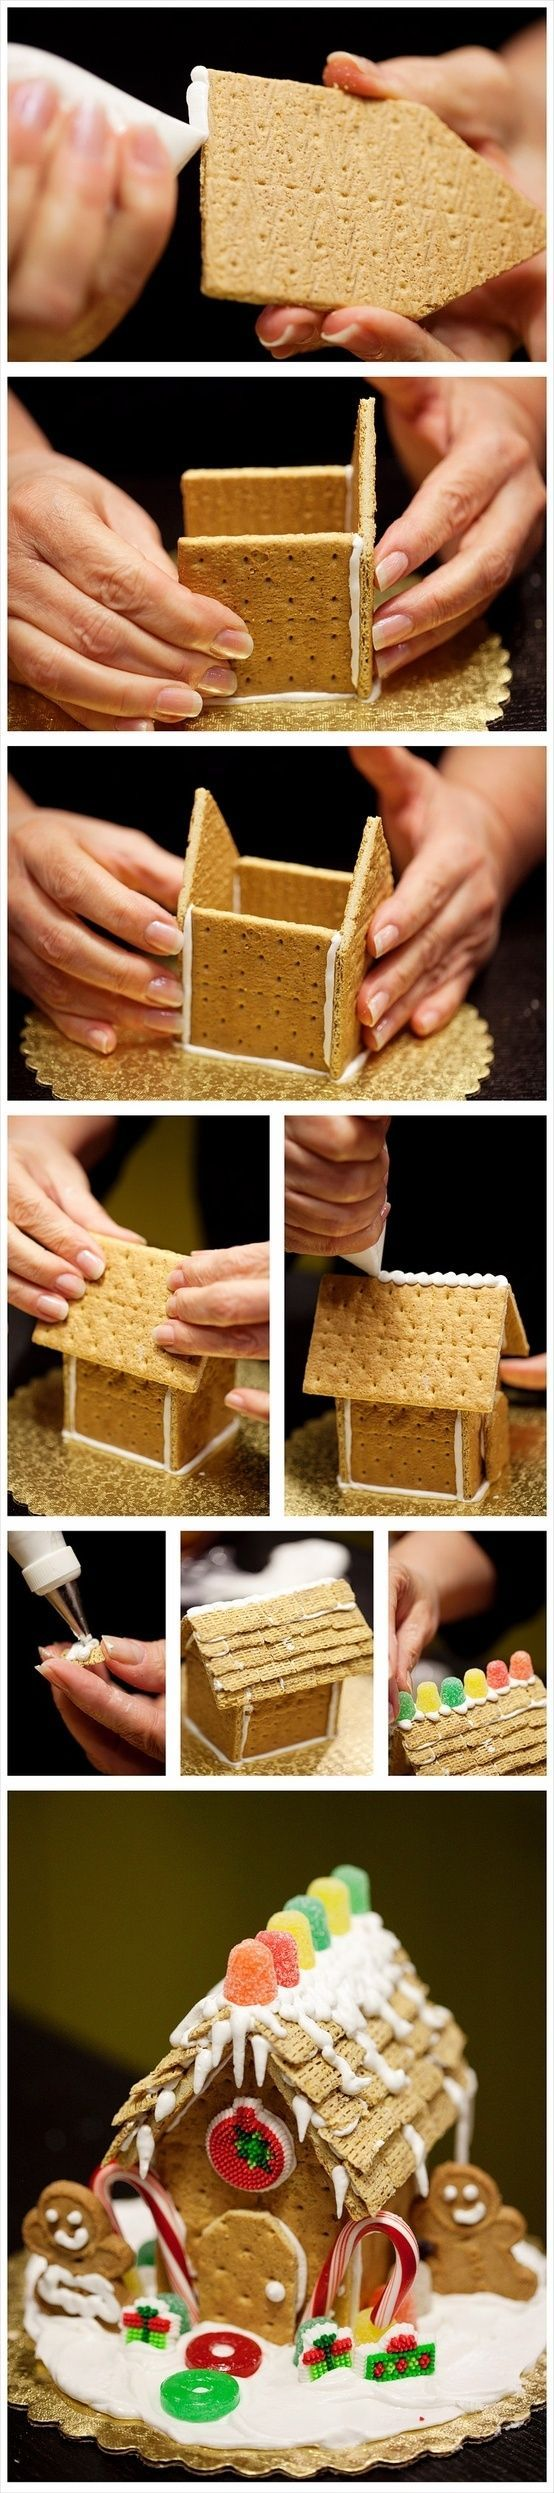 DIY Ginger Bread House craft